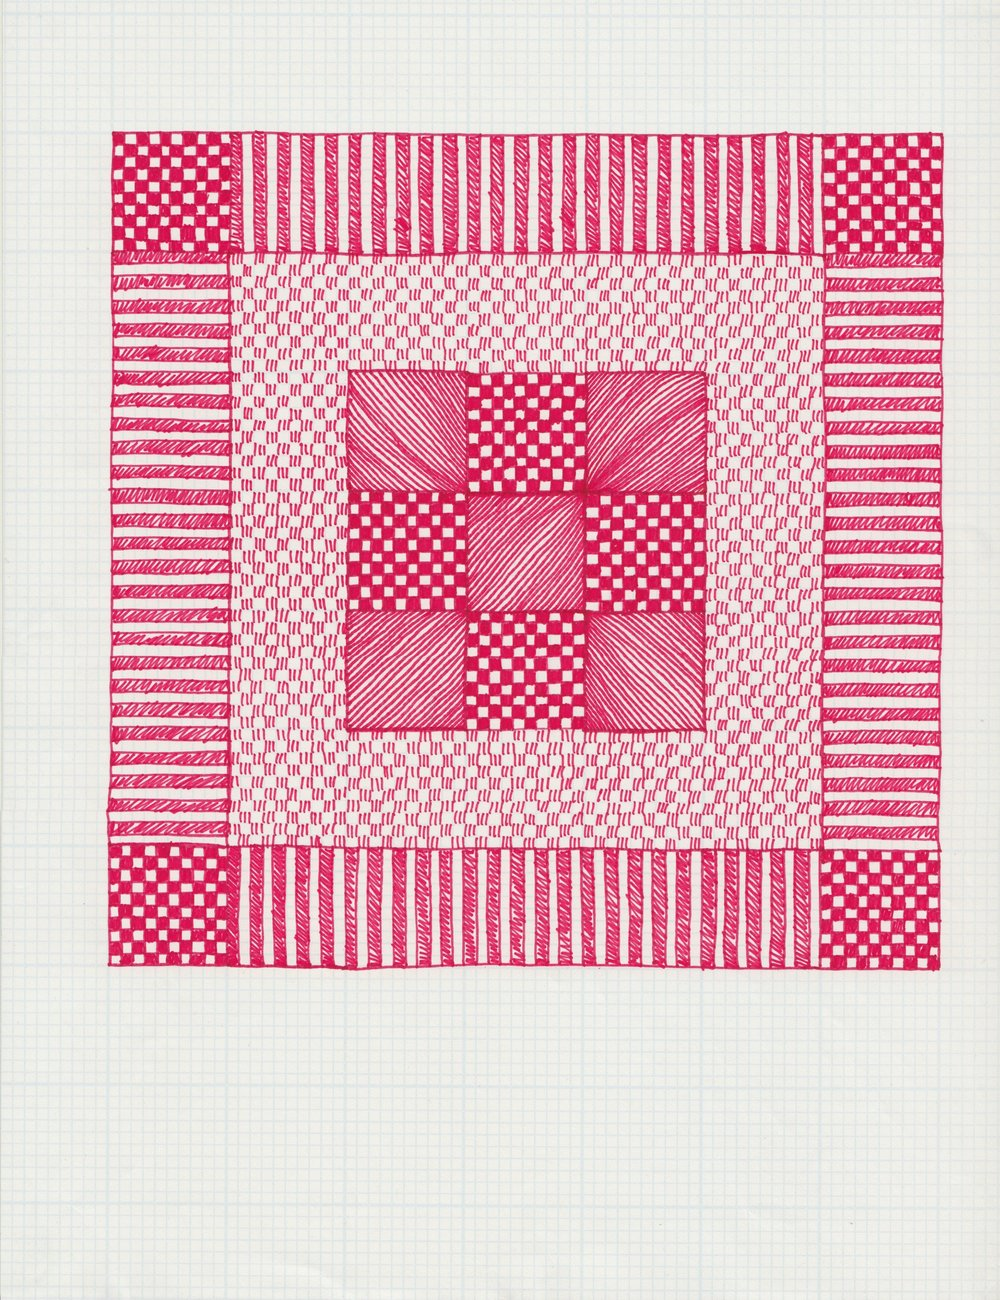 Pen and ink on graph paper, 8.5 x 11 IN, 2016